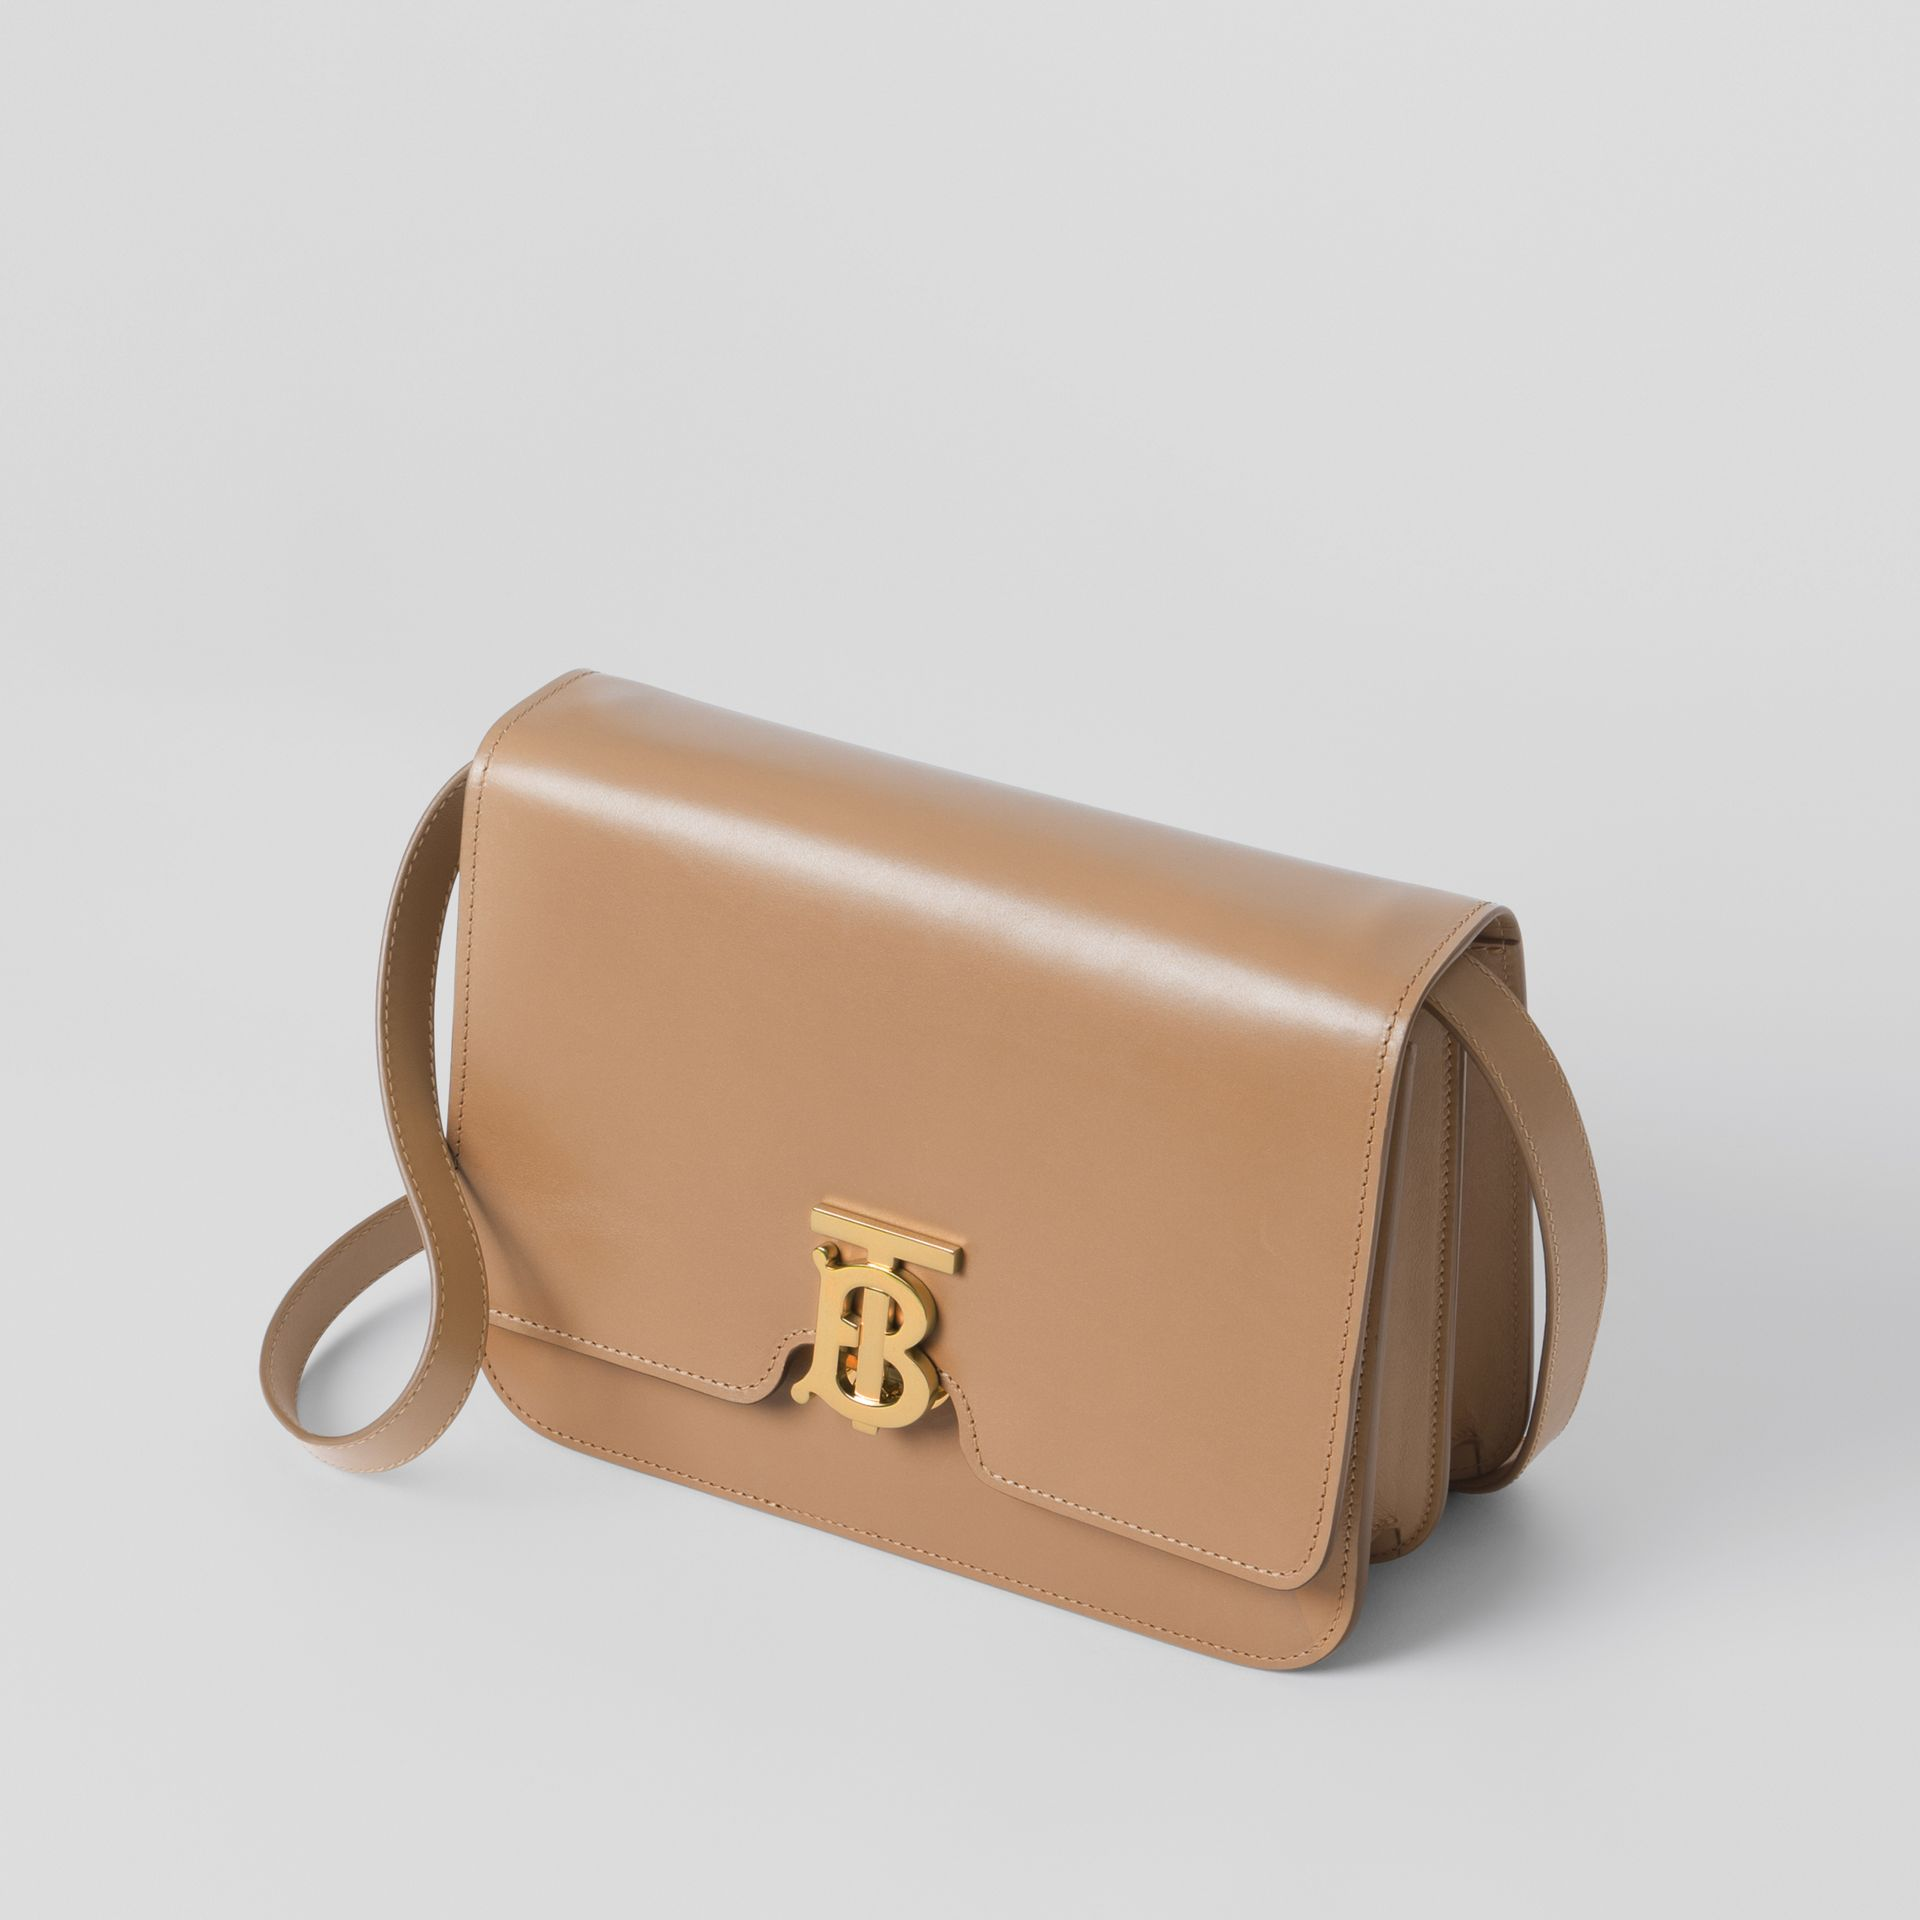 Medium Leather TB Bag in Light Camel - Women | Burberry United Kingdom - gallery image 1